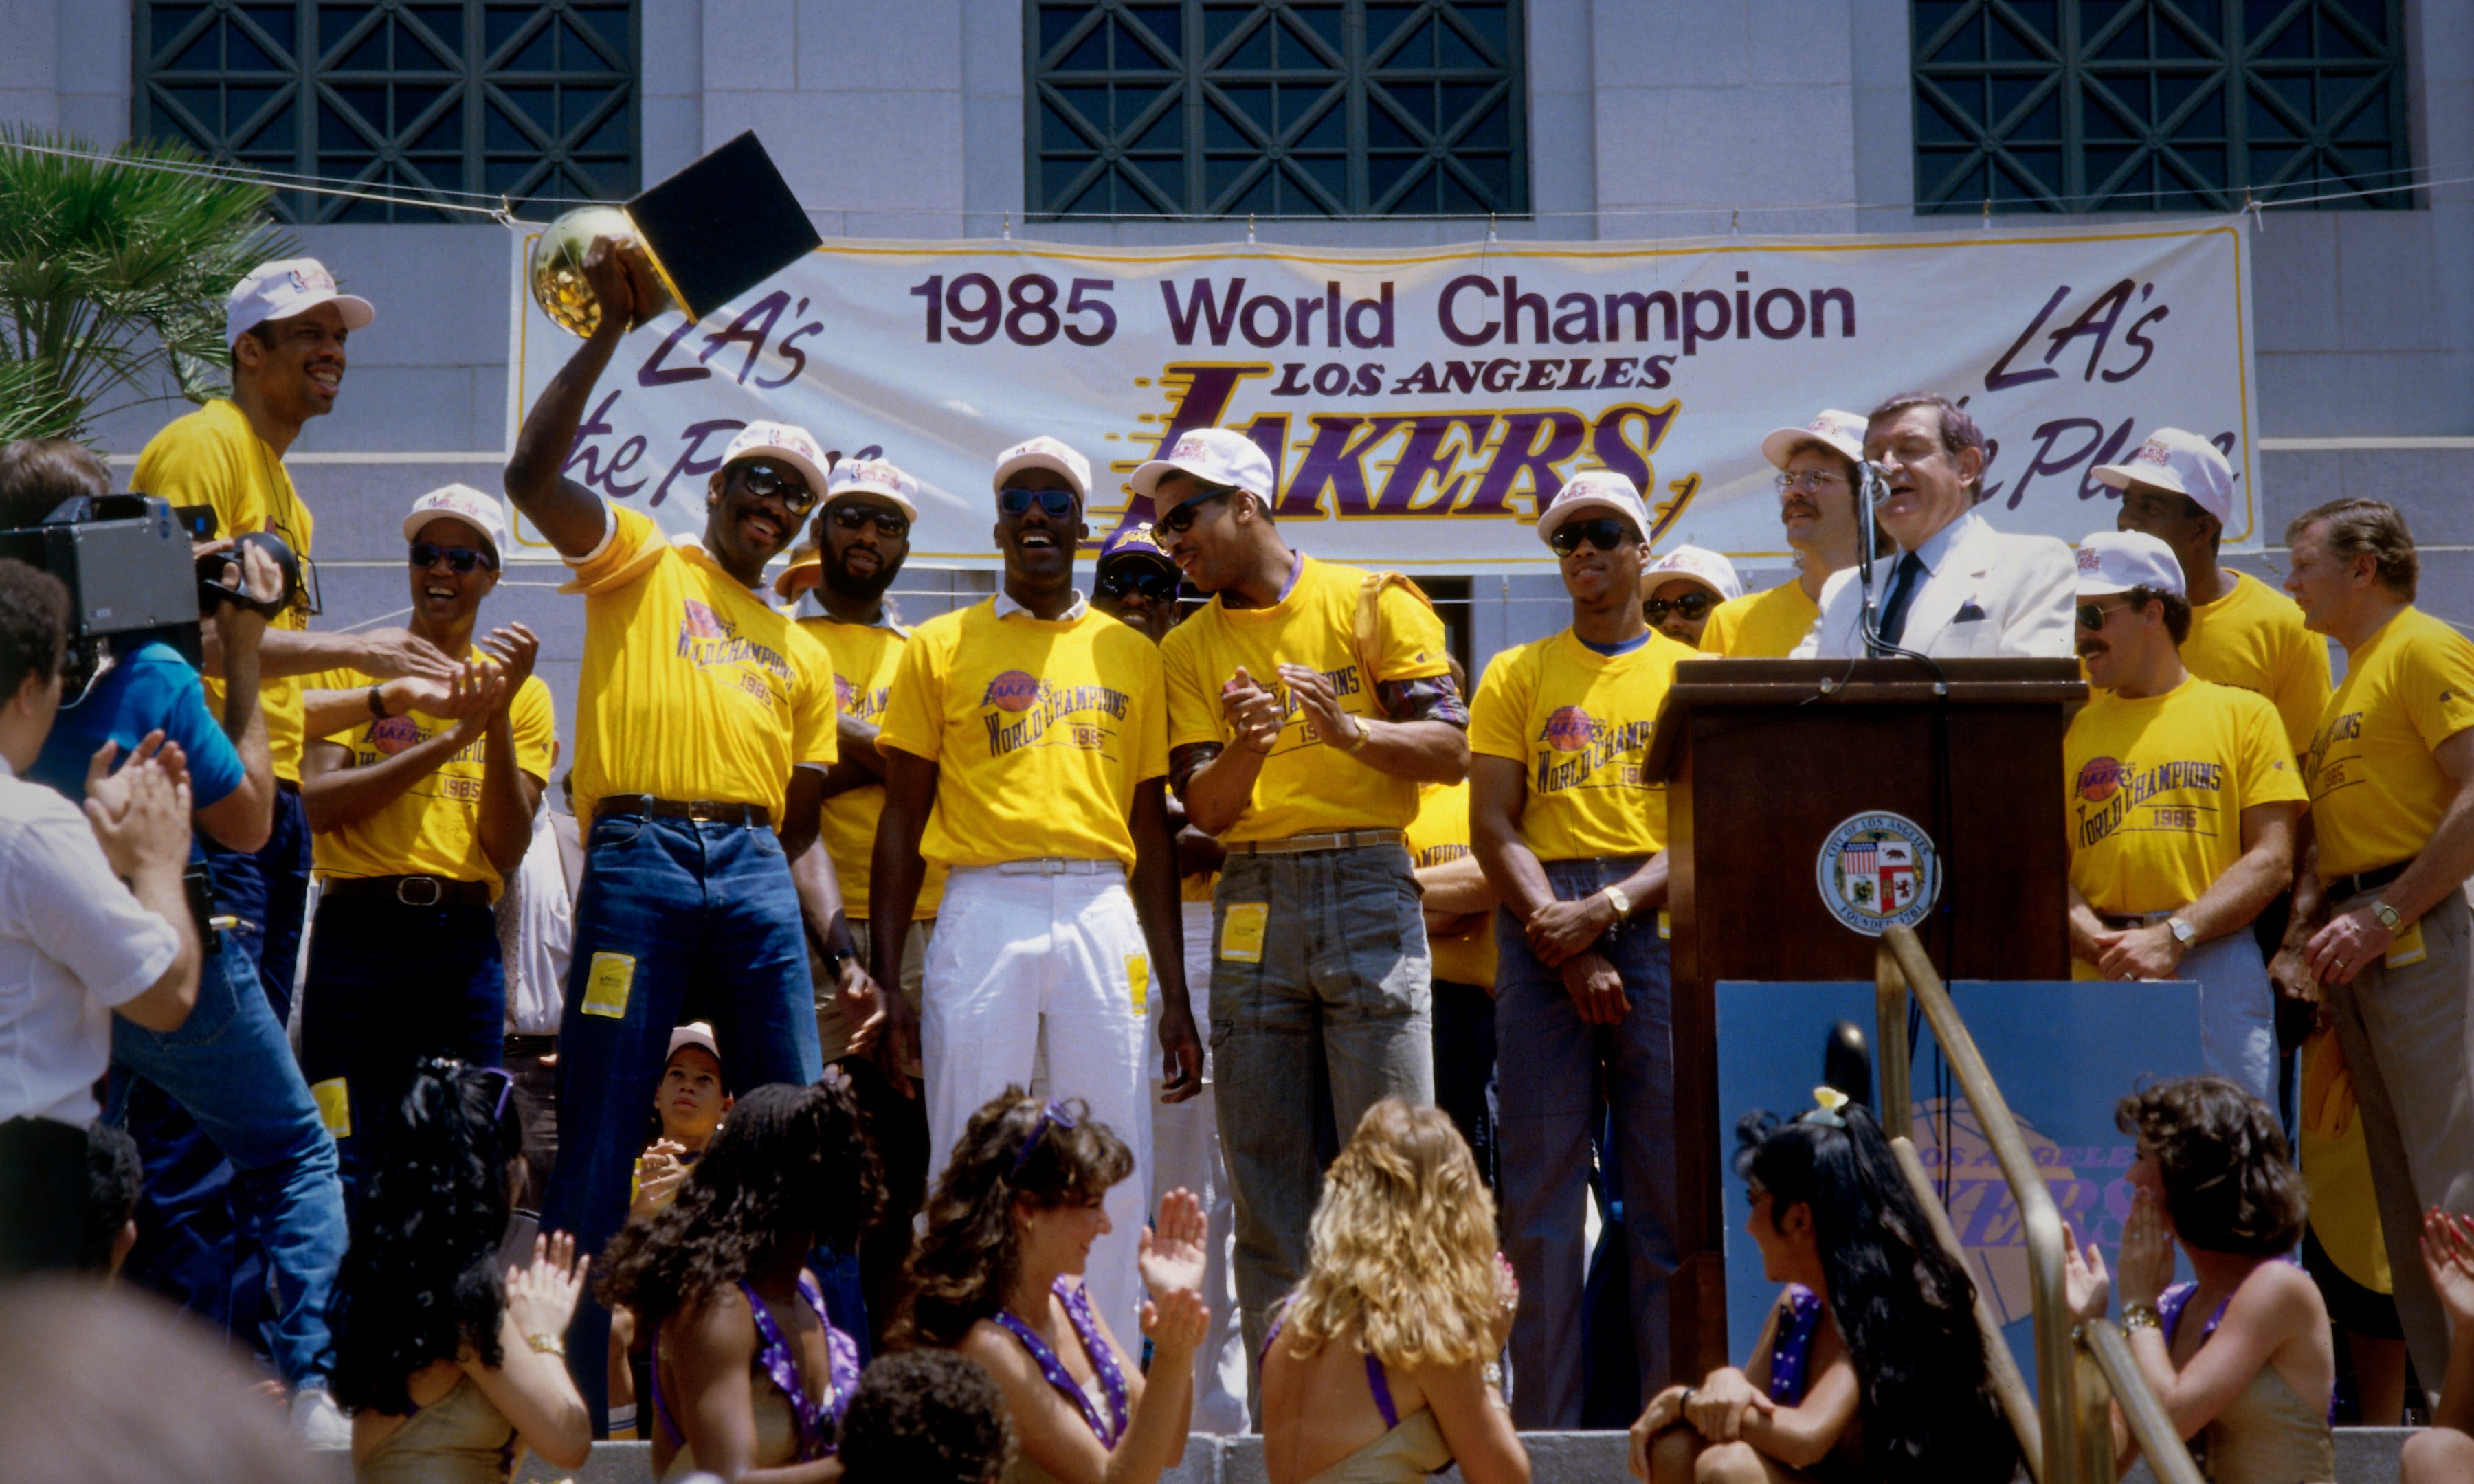 1998 NBA Champs and Chick Hearn